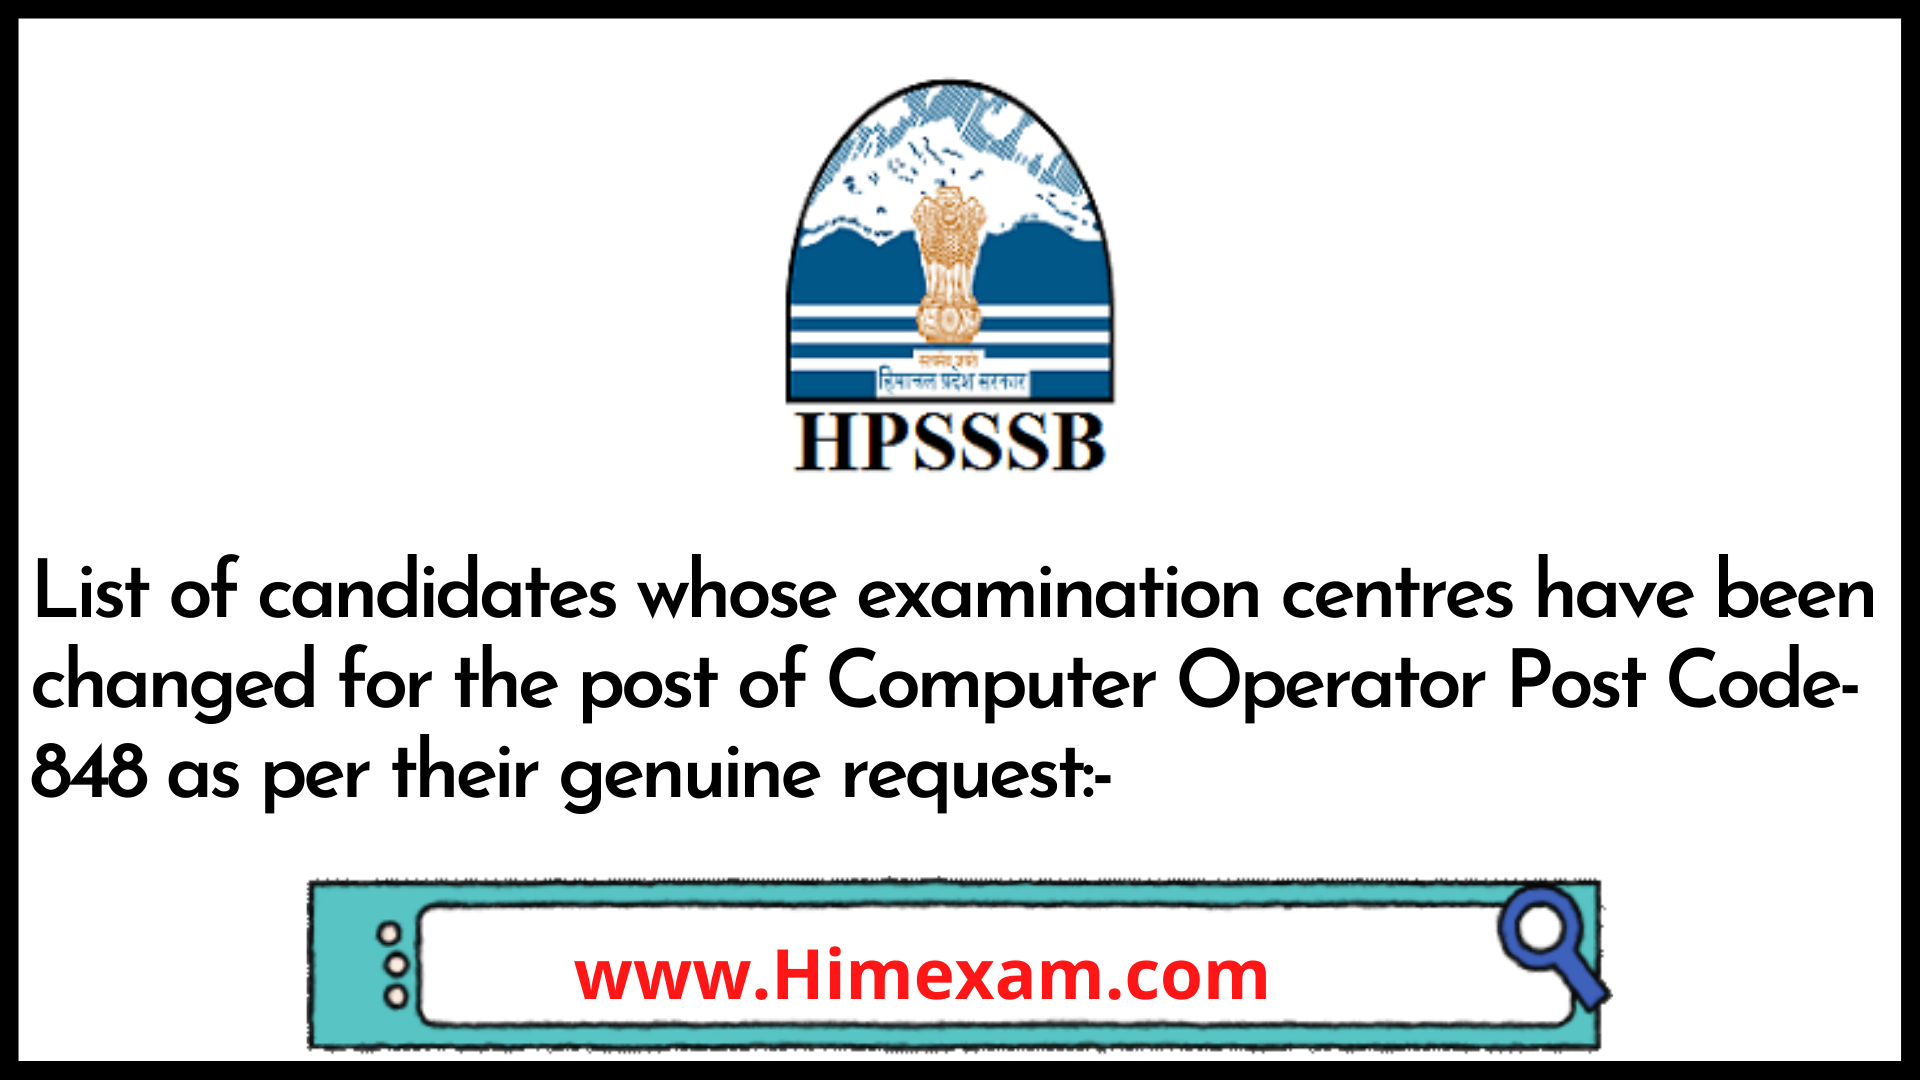 List of candidates whose examination centres have been changed for the post of Computer Operator Post Code-848 as per their genuine request:-